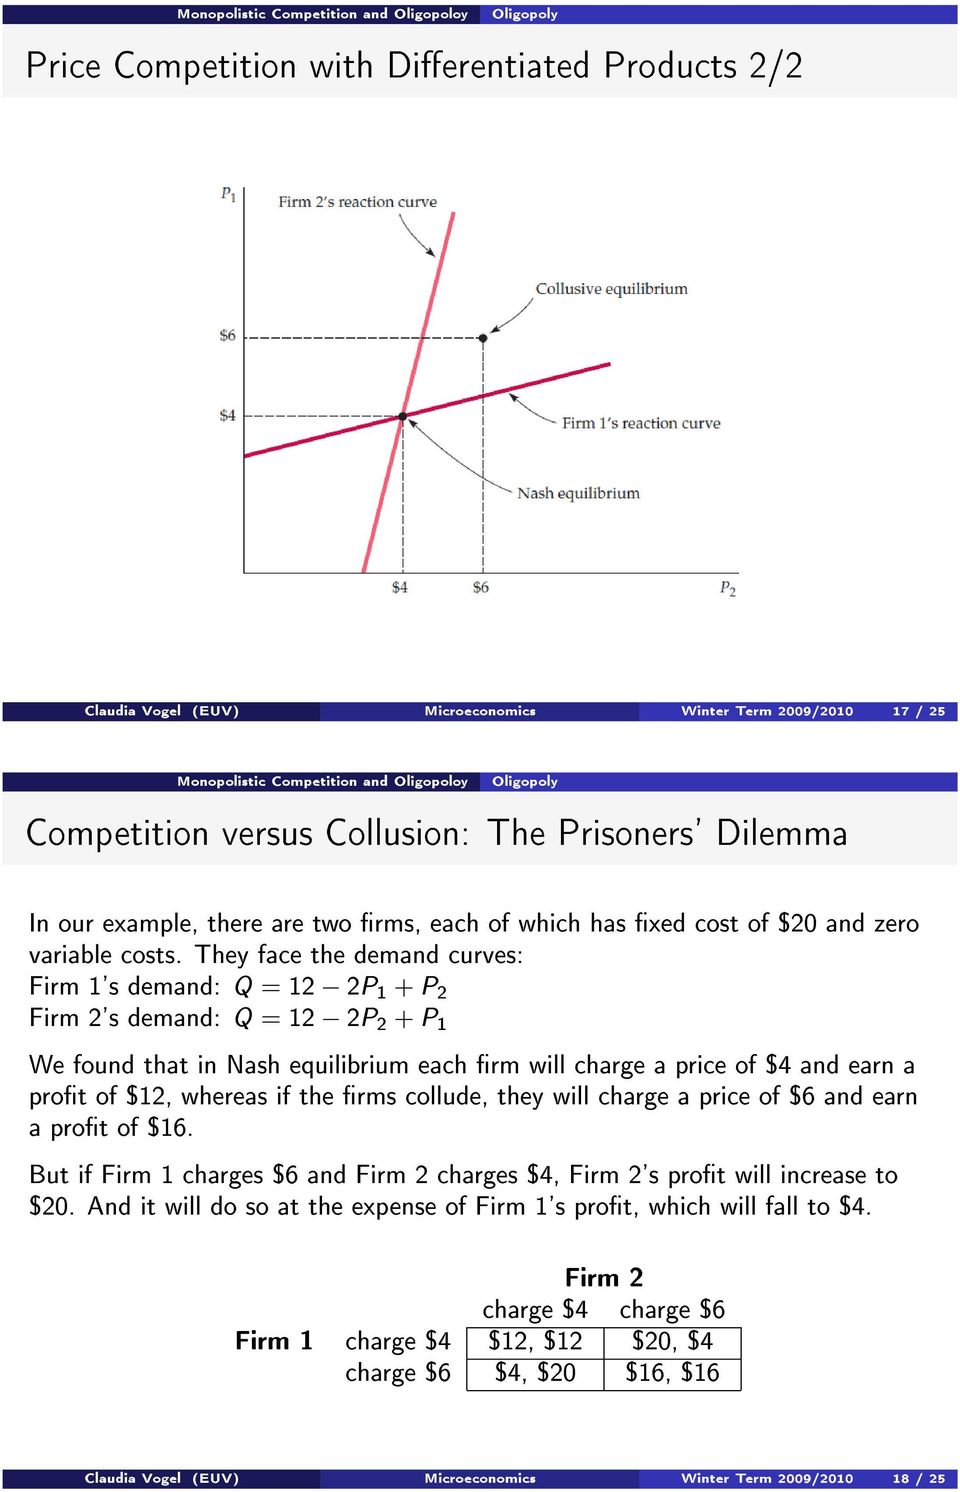 They face the demand curves: Firm 1's demand: Q = 12 2P 1 + P 2 Firm 2's demand: Q = 12 2P 2 + P 1 We found that in Nash equilibrium each rm will charge a price of $4 and earn a prot of $12, whereas